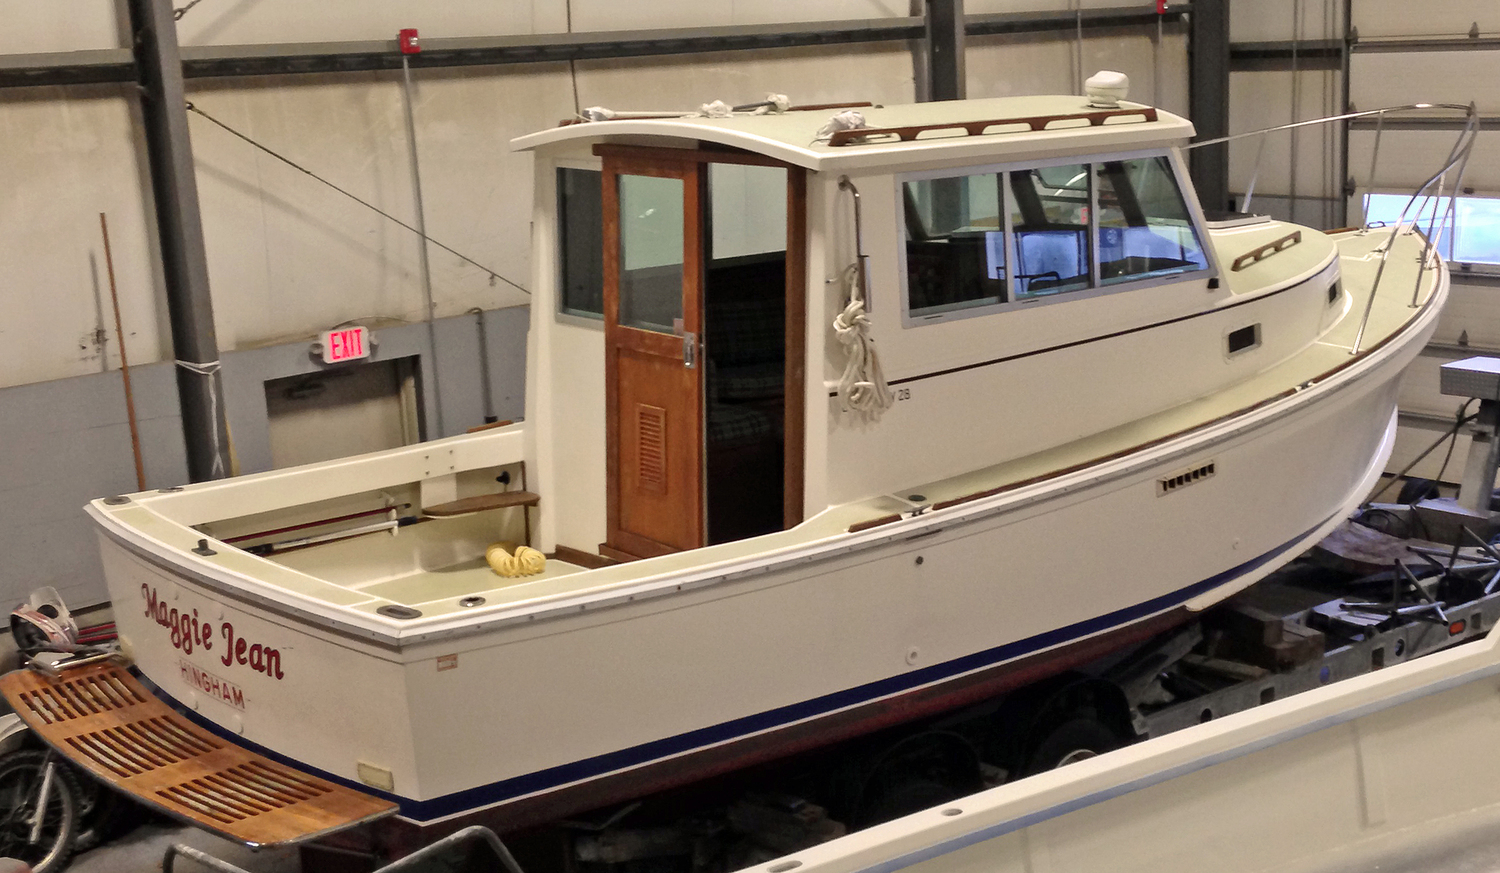 Hardtop Cape Dory For Sale and Ready For Spring and Summer 2014! Call us to make an appointment or more information. 508-563-9800